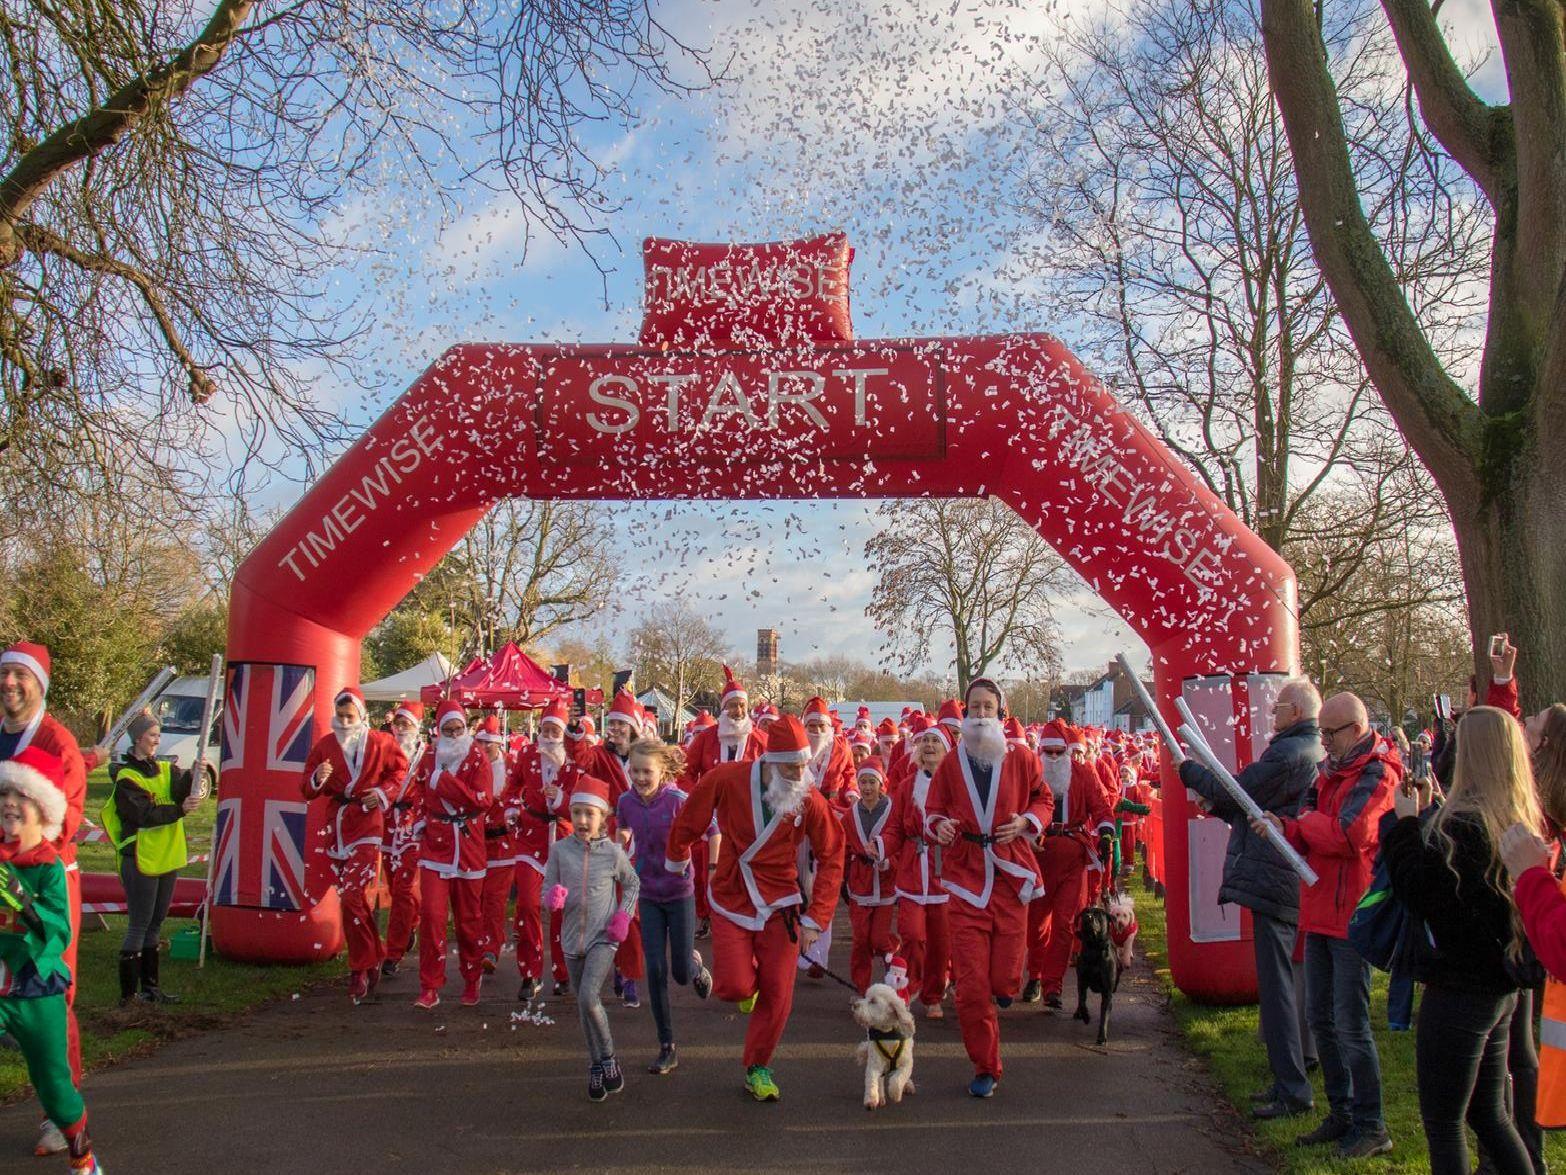 The start of the Myton Hospices's Santa Dash in Leamington. Photo by Viv Porteous